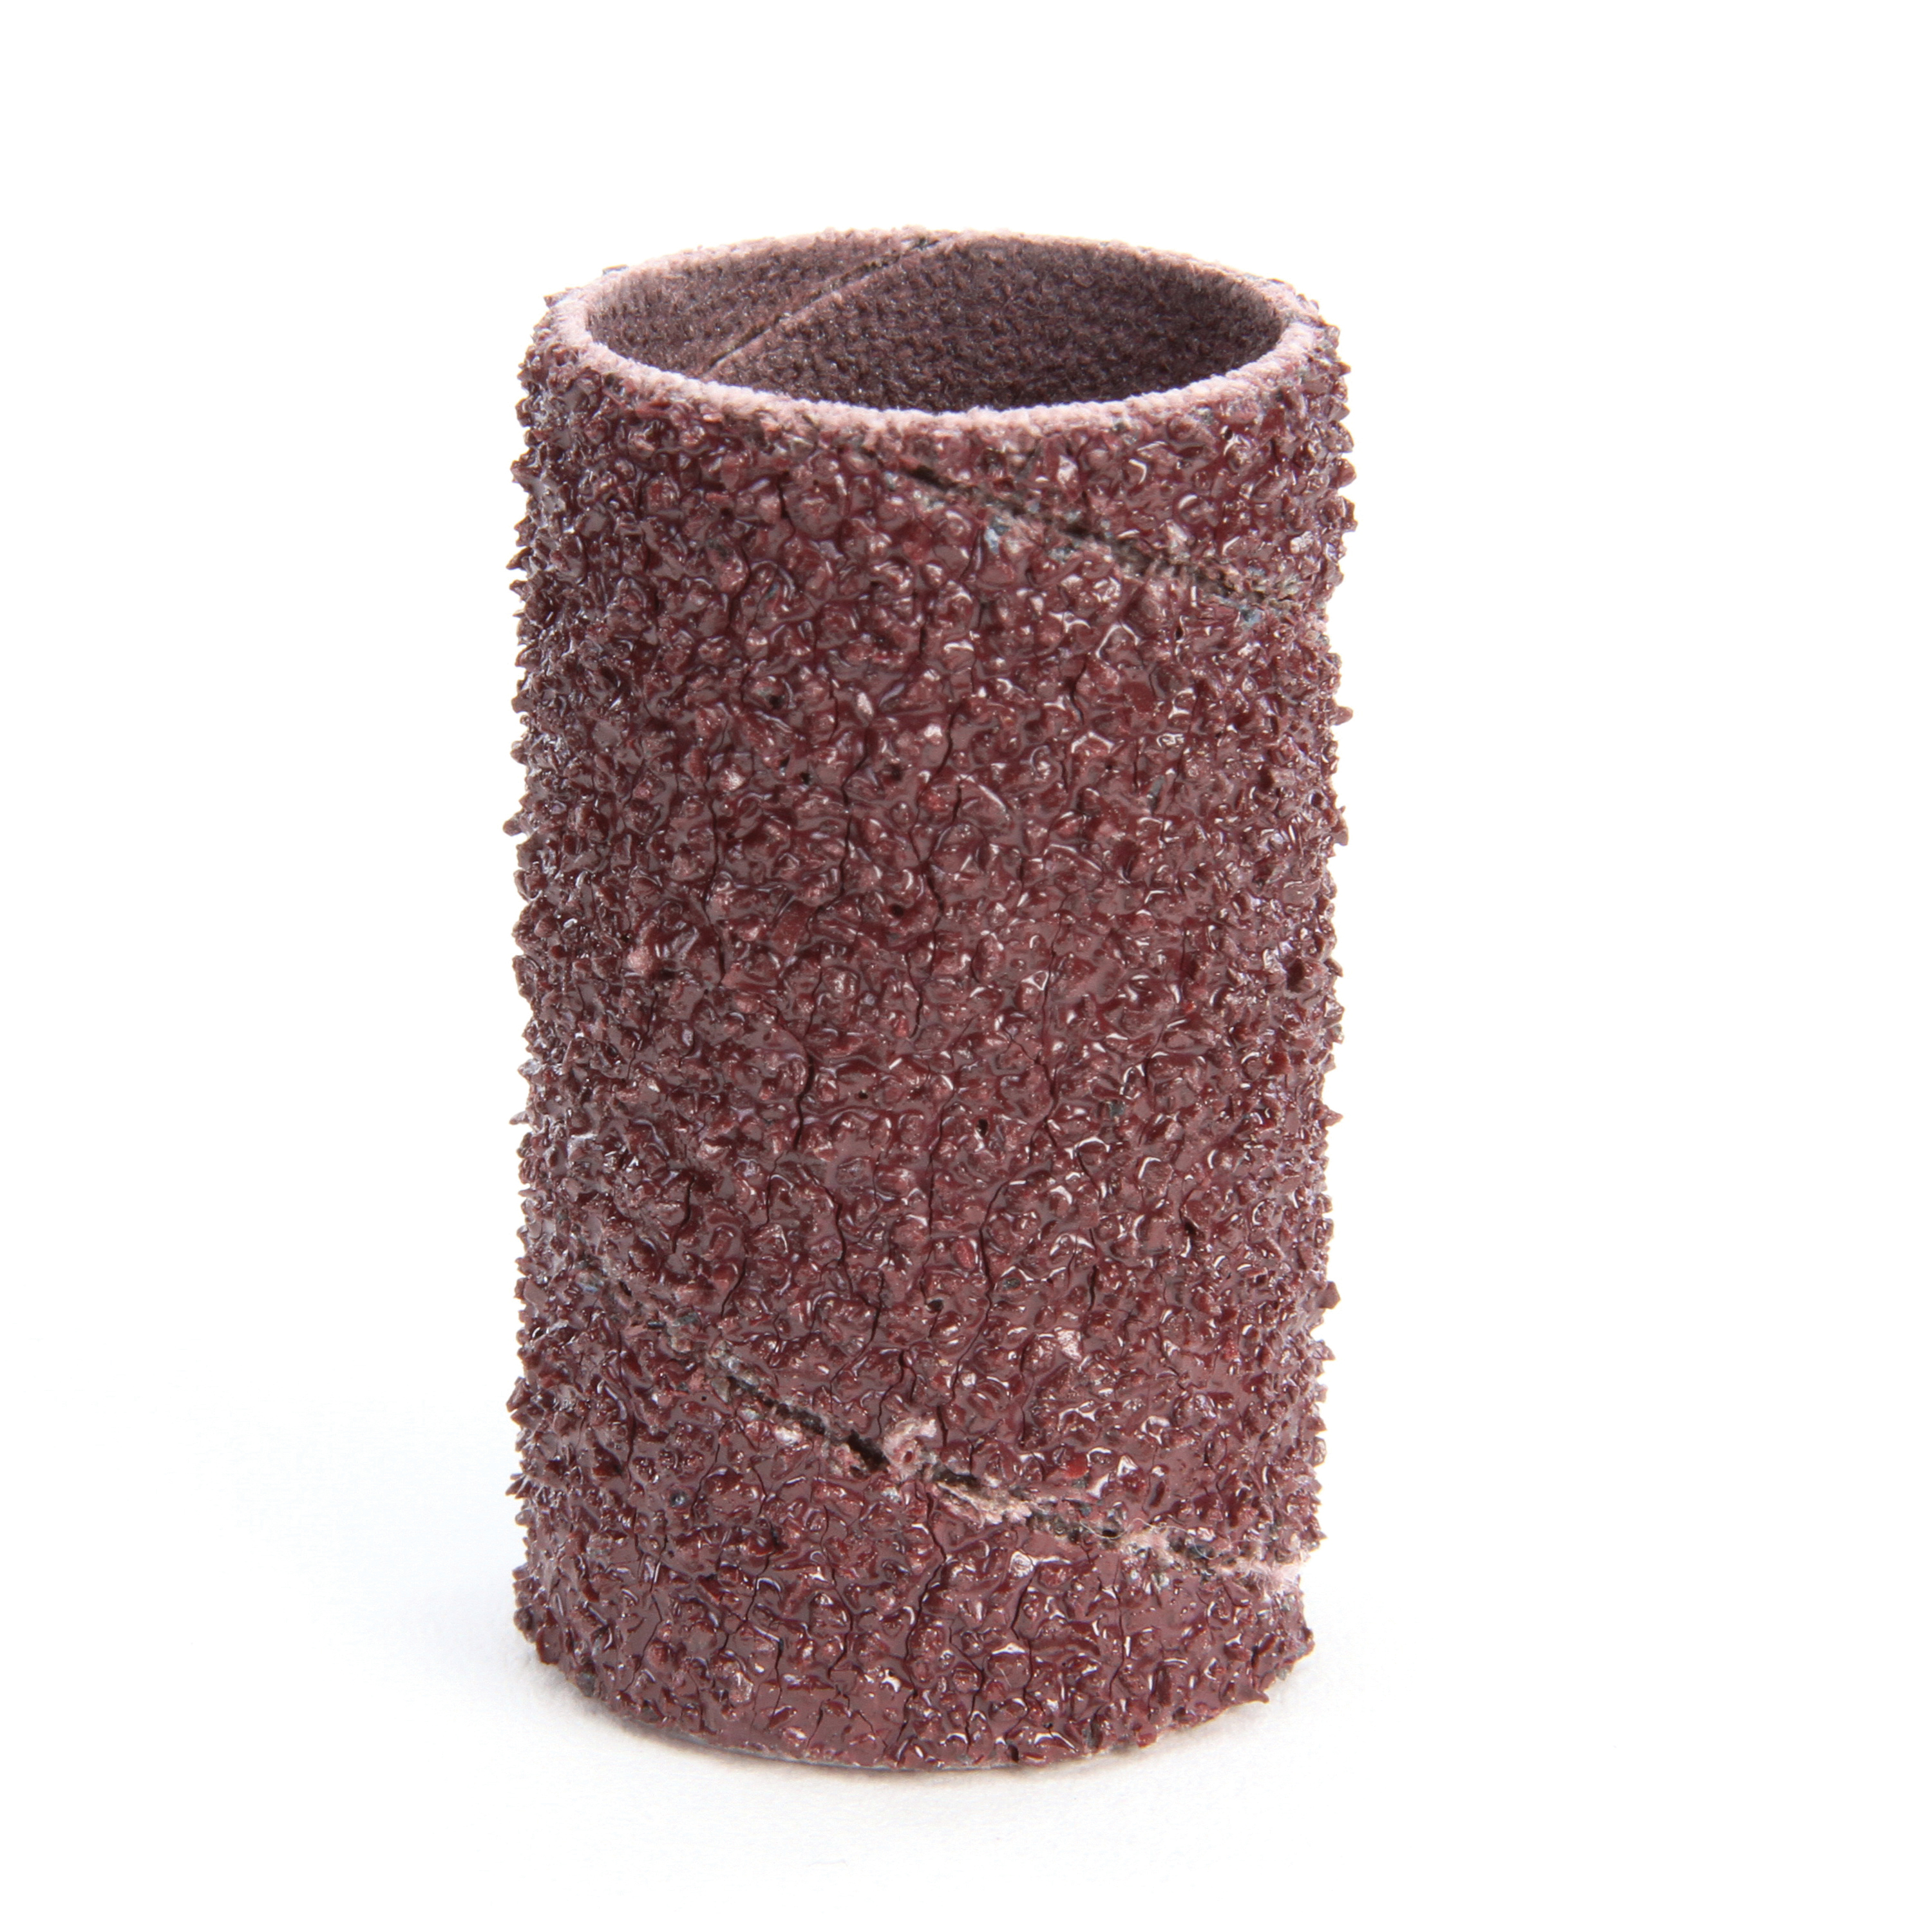 3M™ 051144-11977 Coated Spiral Band, 3/4 in Dia x 1-1/2 in L, 36 Grit, Very Coarse Grade, Aluminum Oxide Abrasive